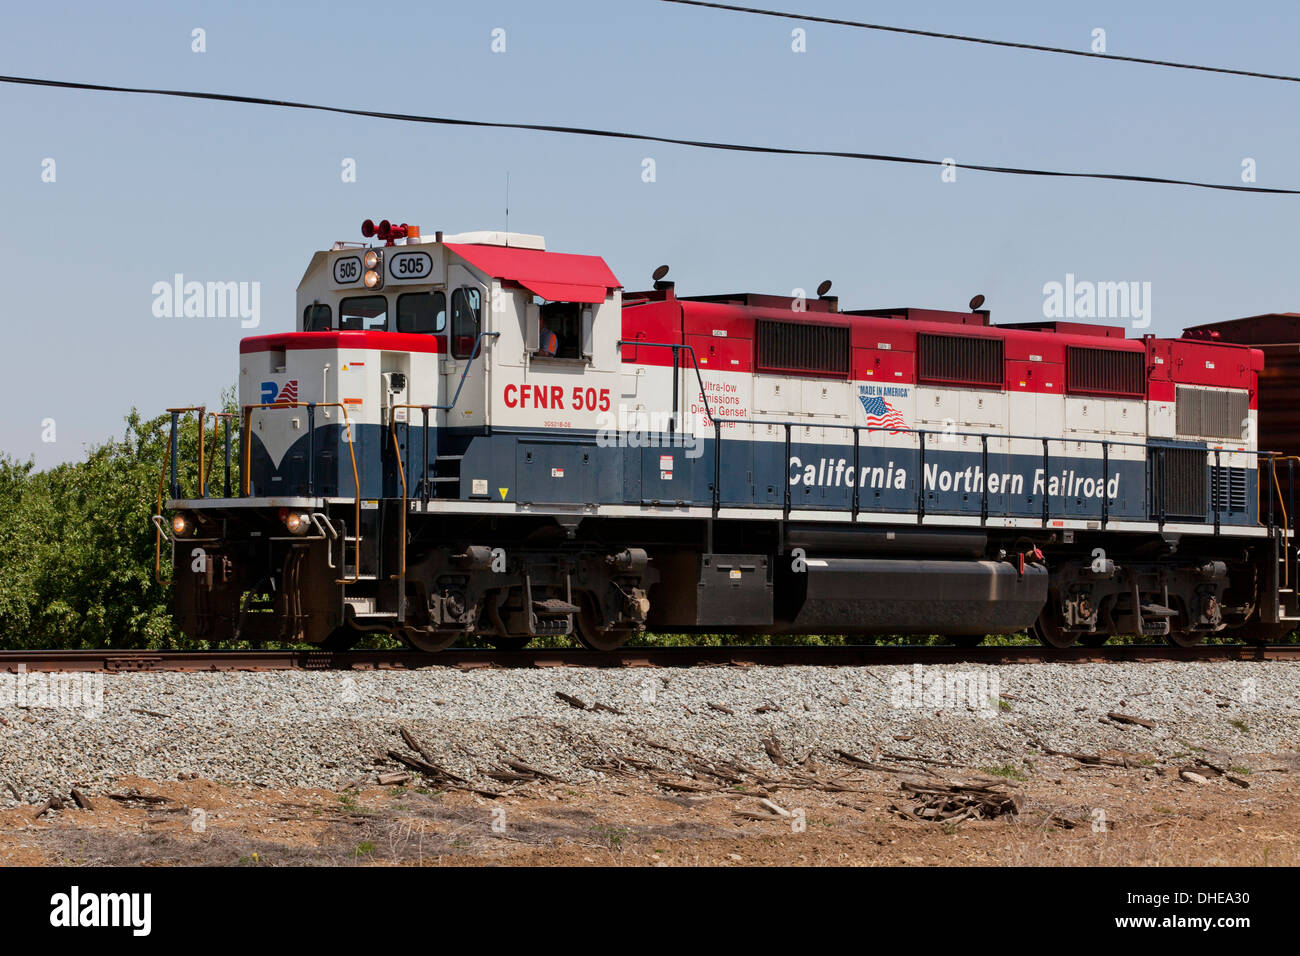 California Northern Railroad freight train - California USA - Stock Image